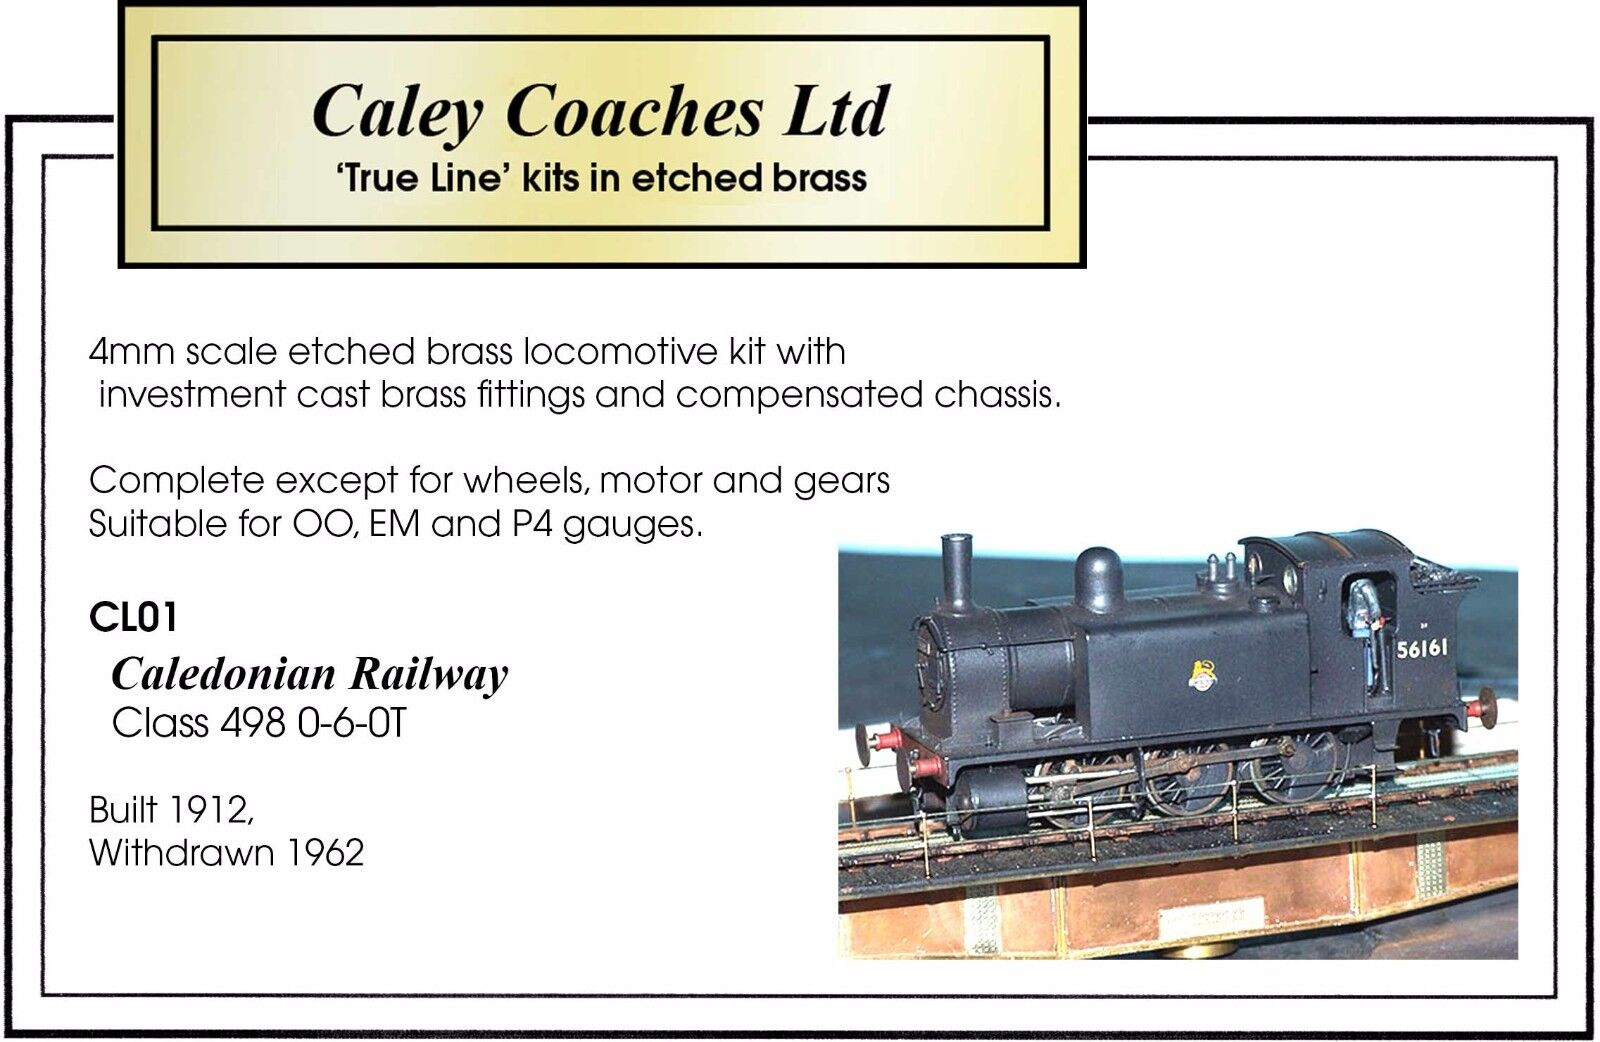 4mm scale. Caledonian Railway Class 498 0-6-0T Locomotive Kit. OO EM P4